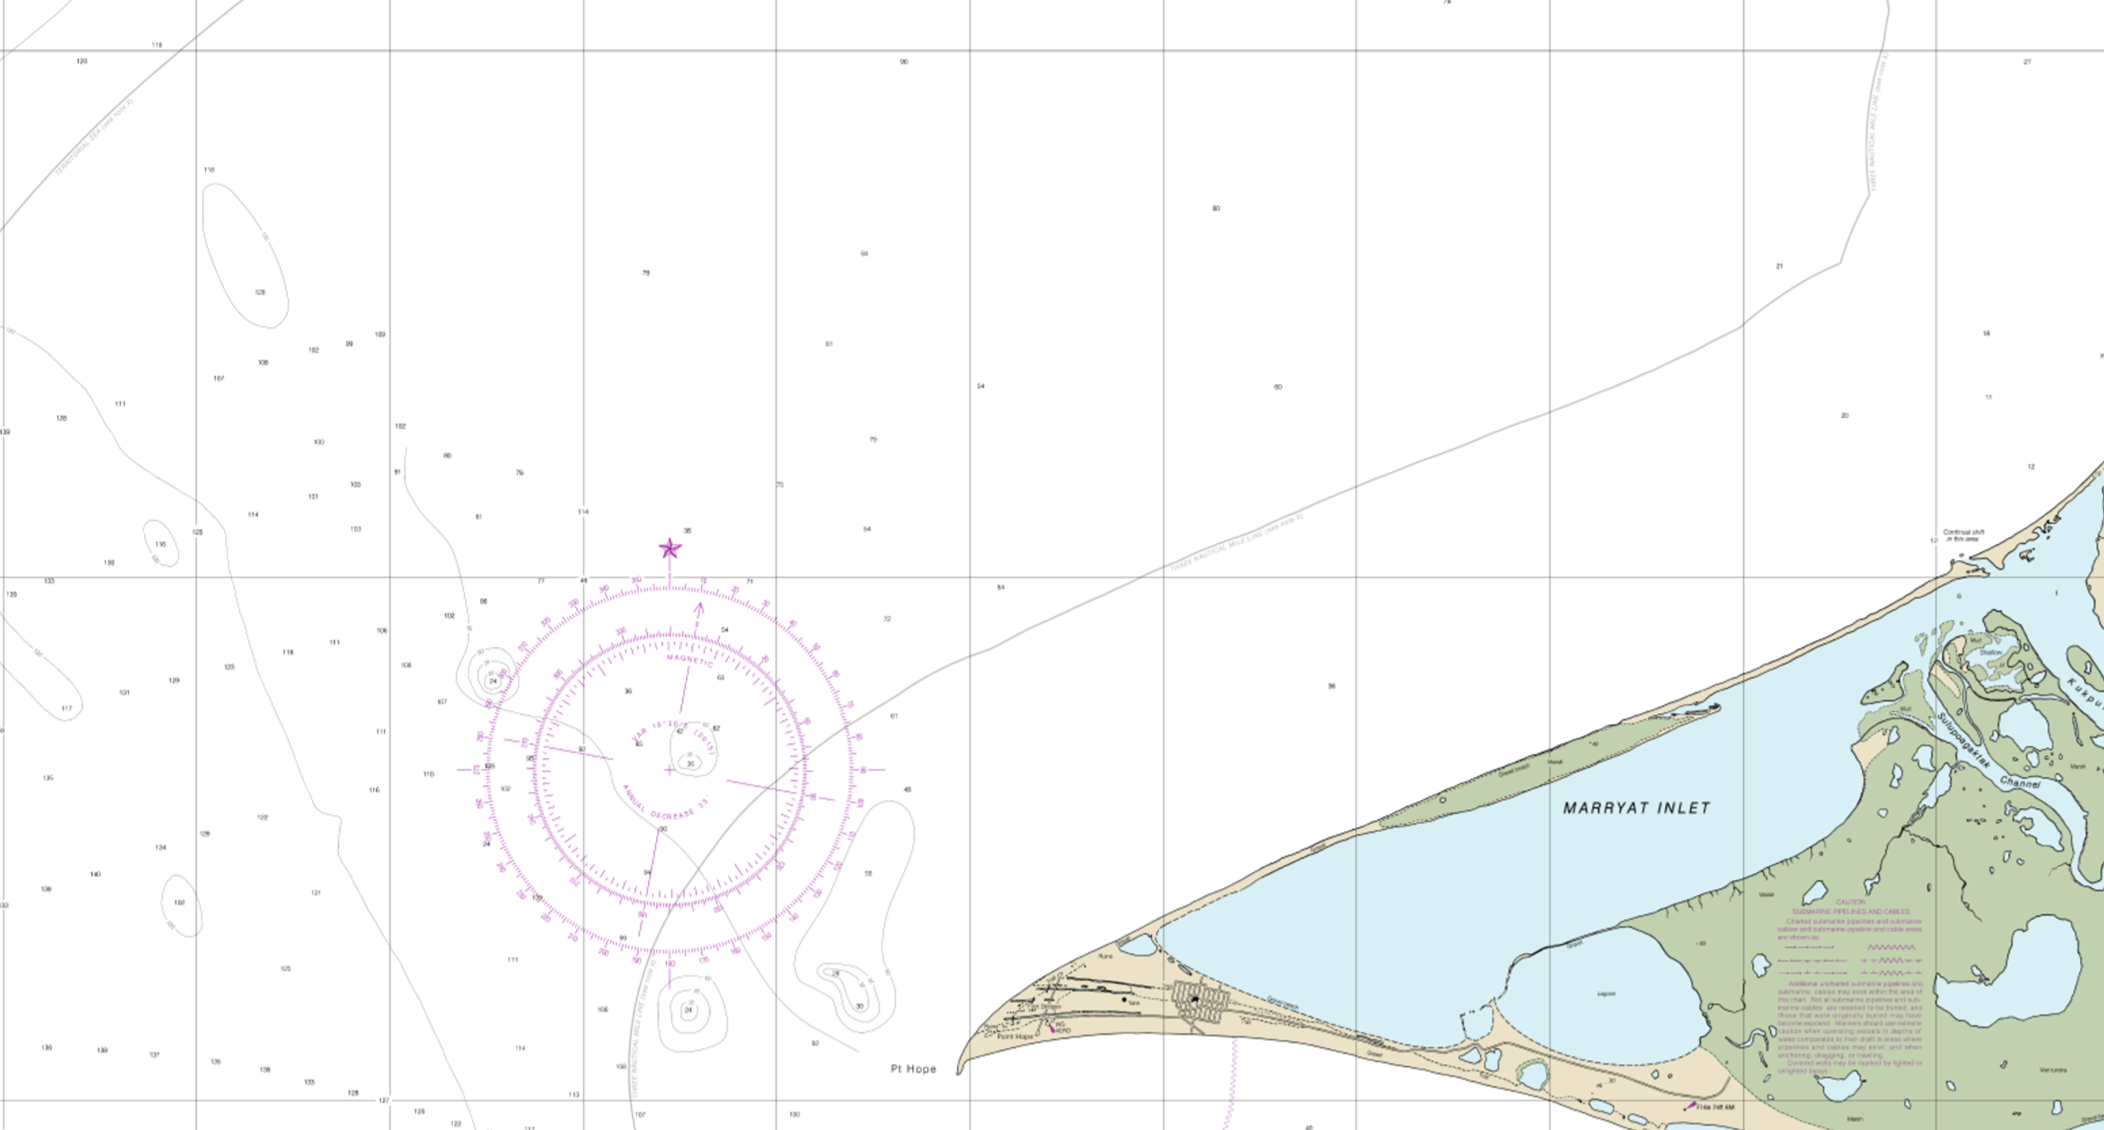 Section of NOAA's Point Hope to Cape Dyer Nautical Chart